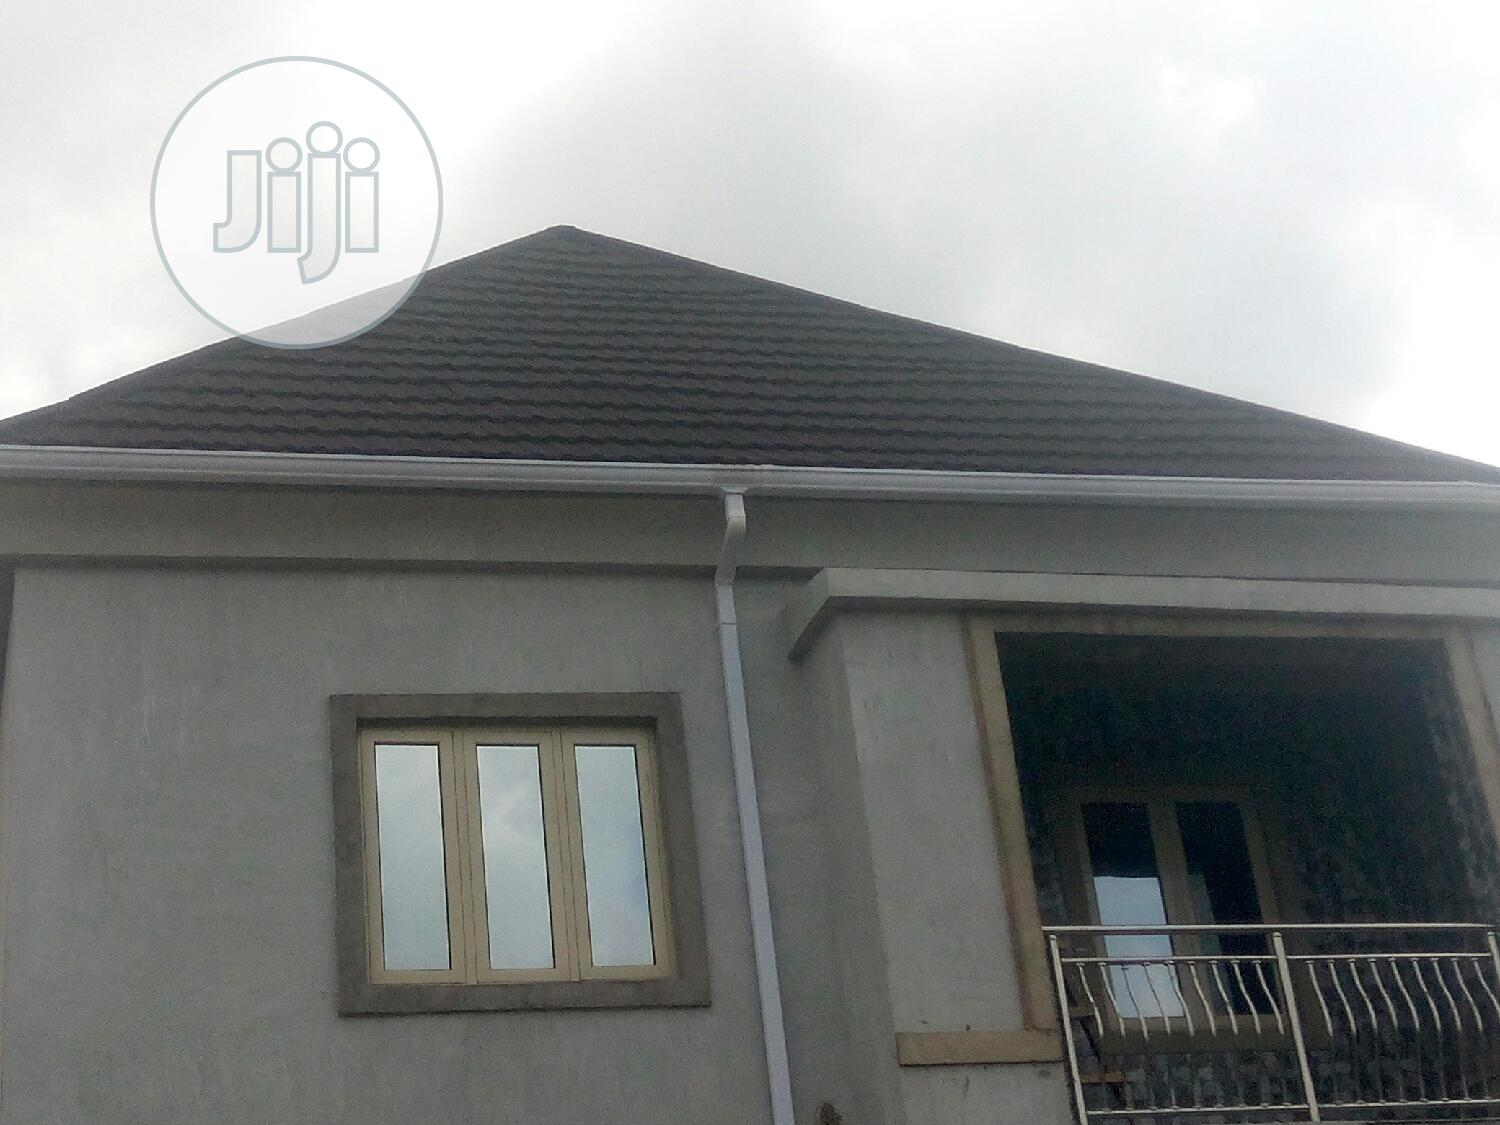 Water Collector & Roofing Gutter